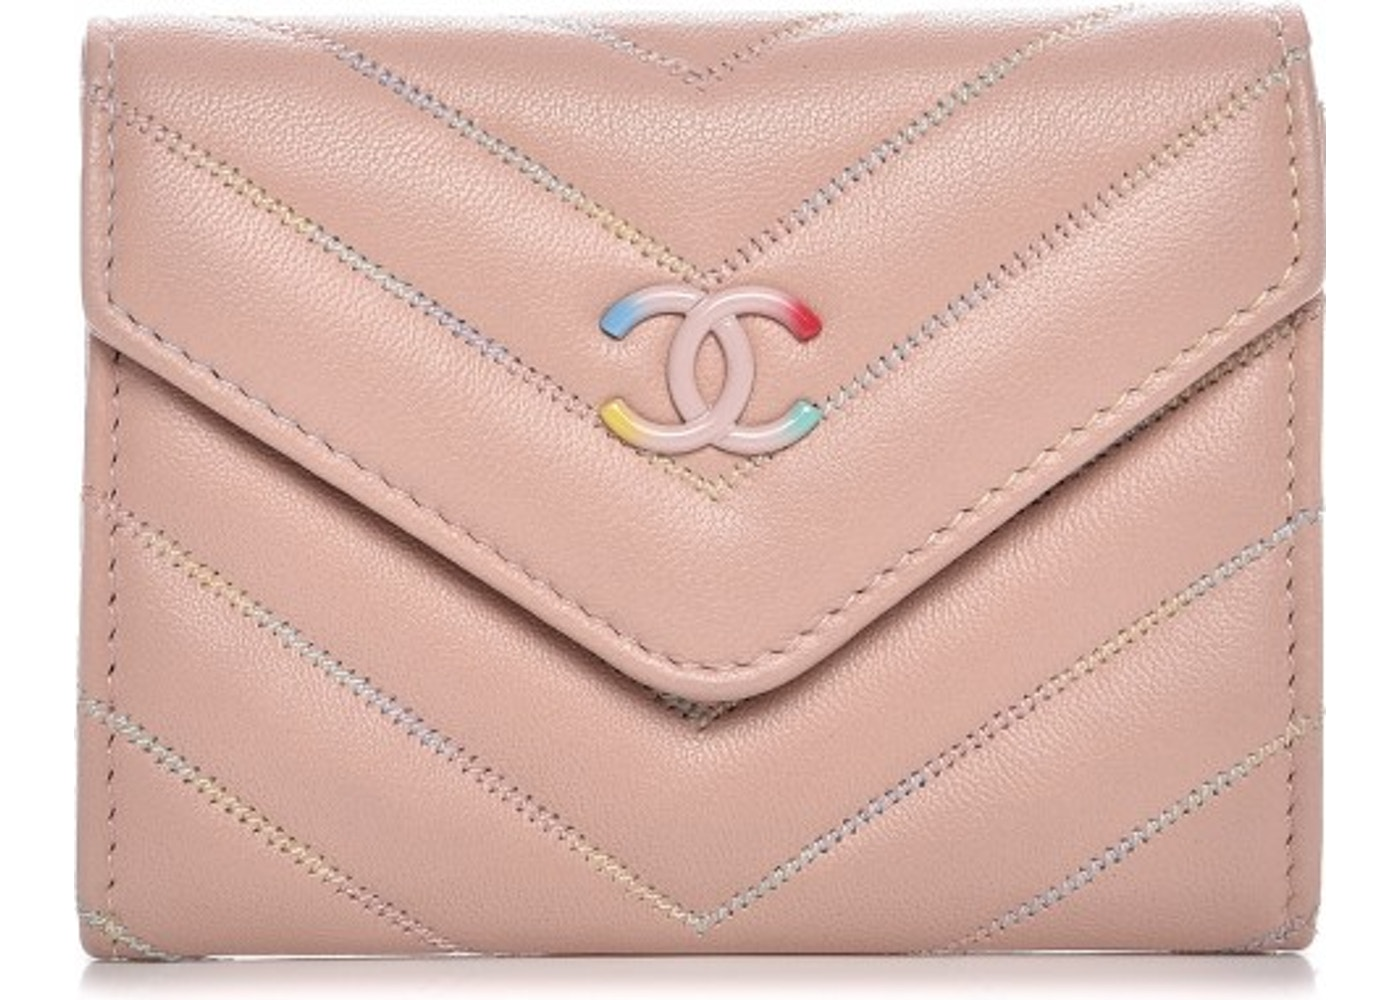 7cebfd2cc126 Chanel Card Holder Quilted Chevron Light Pink. Quilted Chevron Light Pink